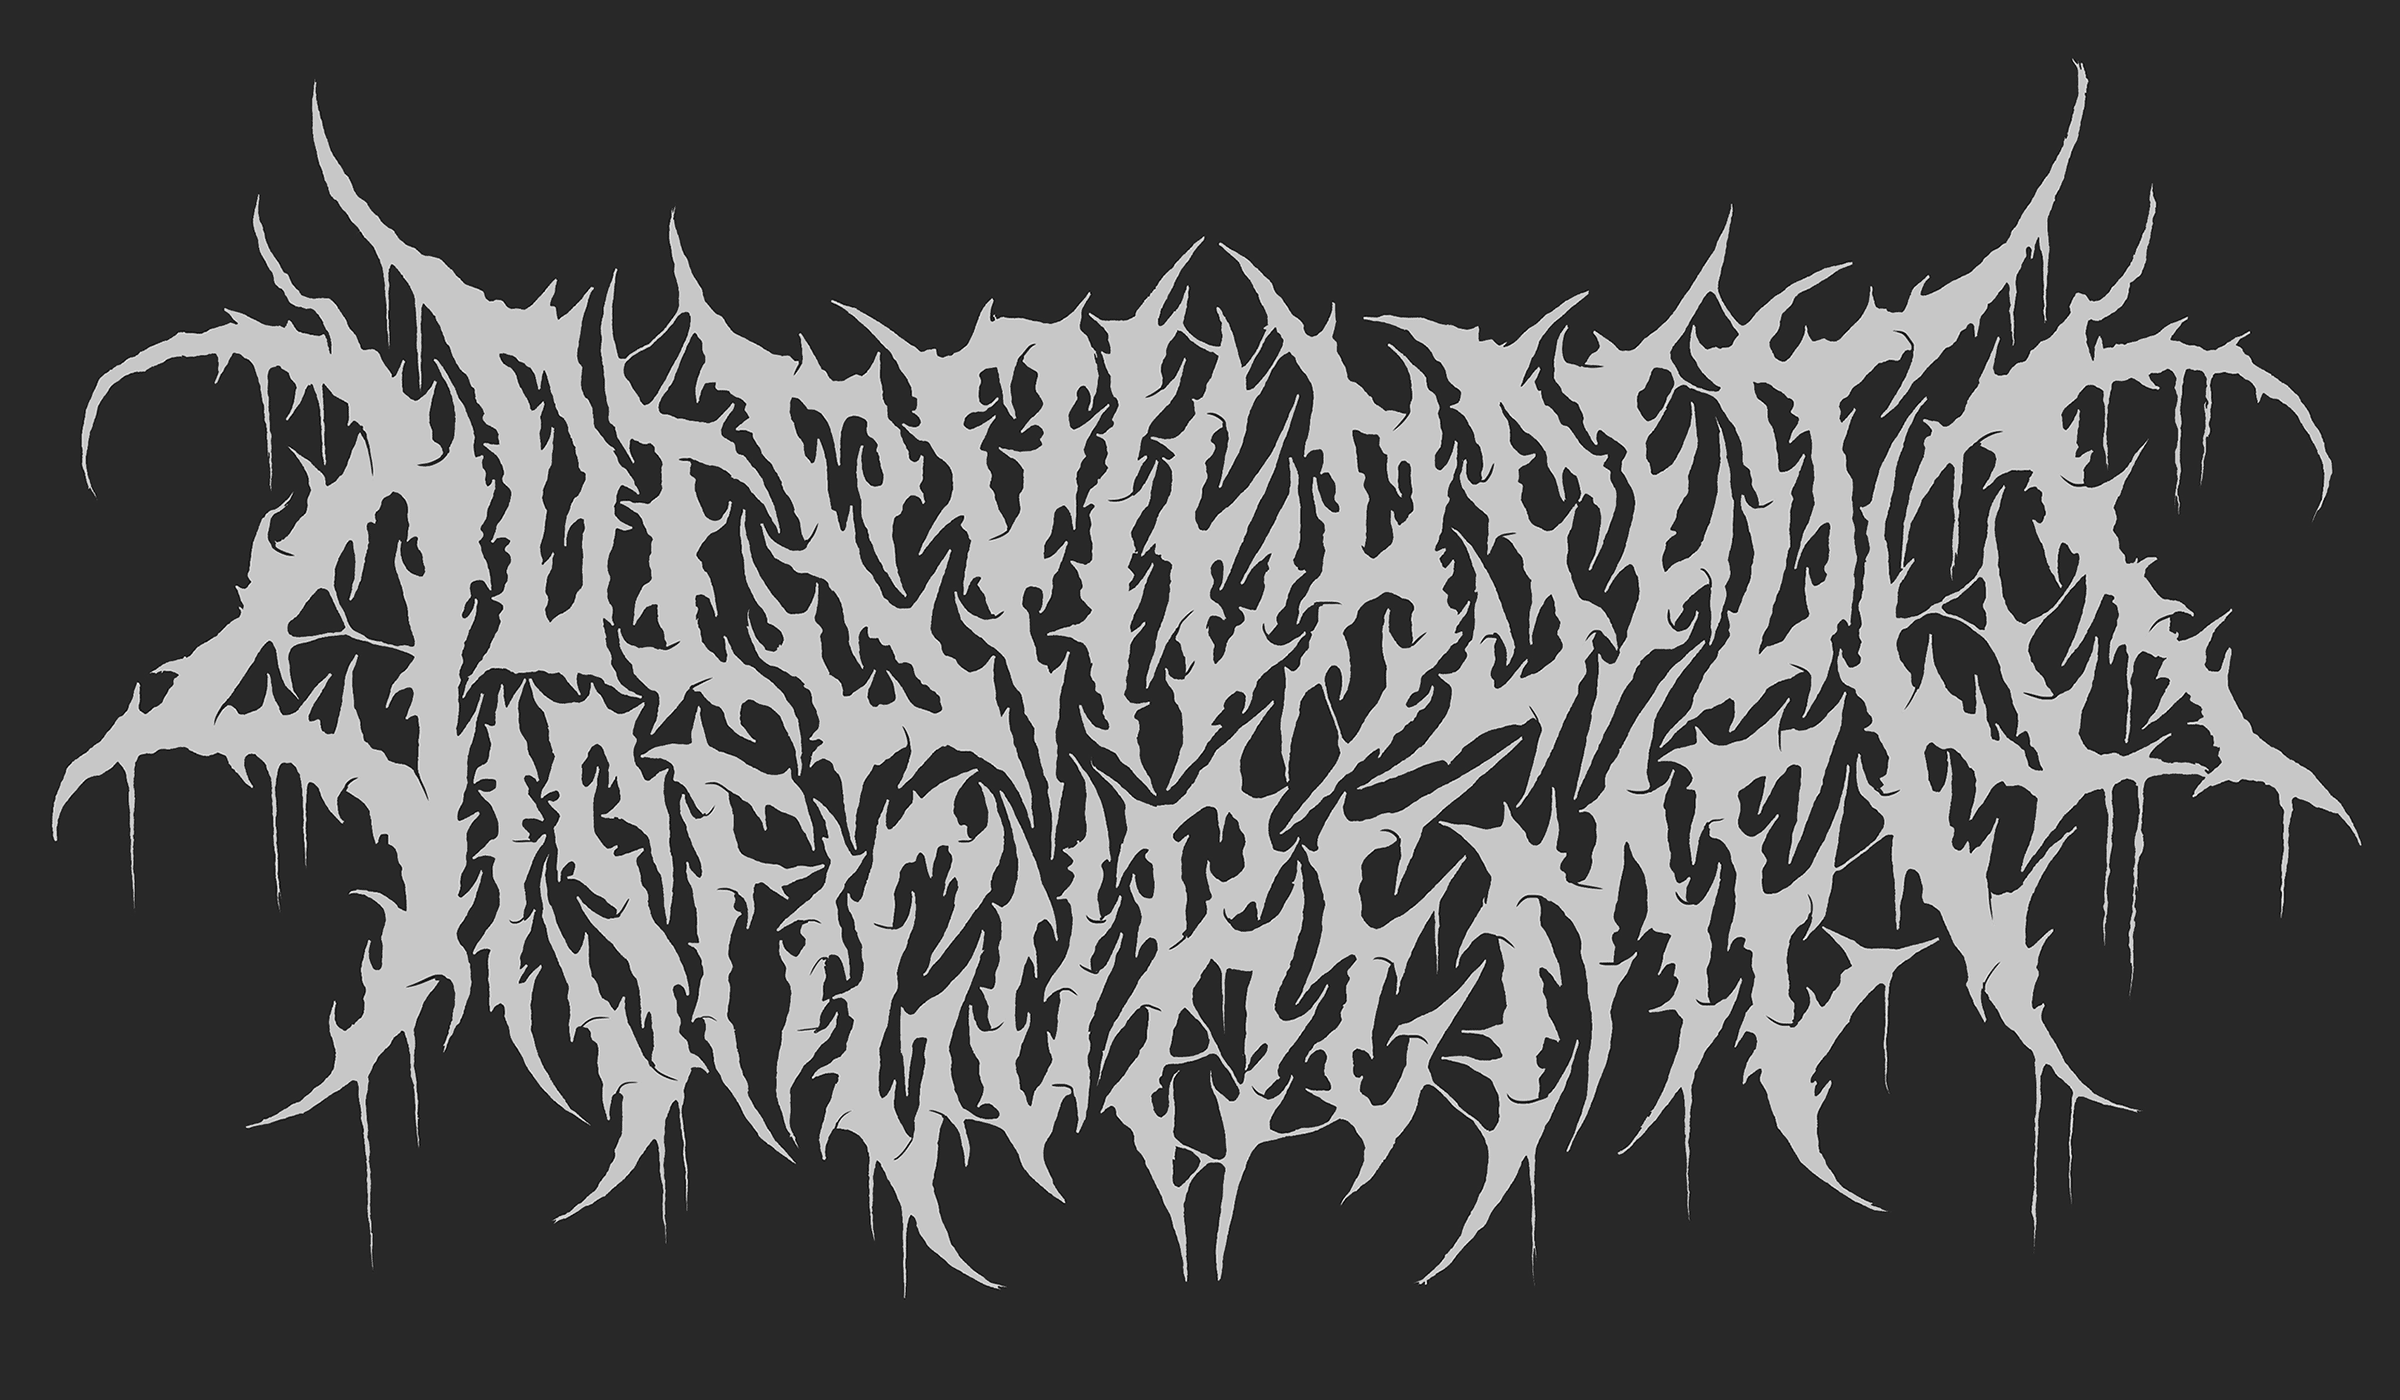 Displeased Disfigurement band logo